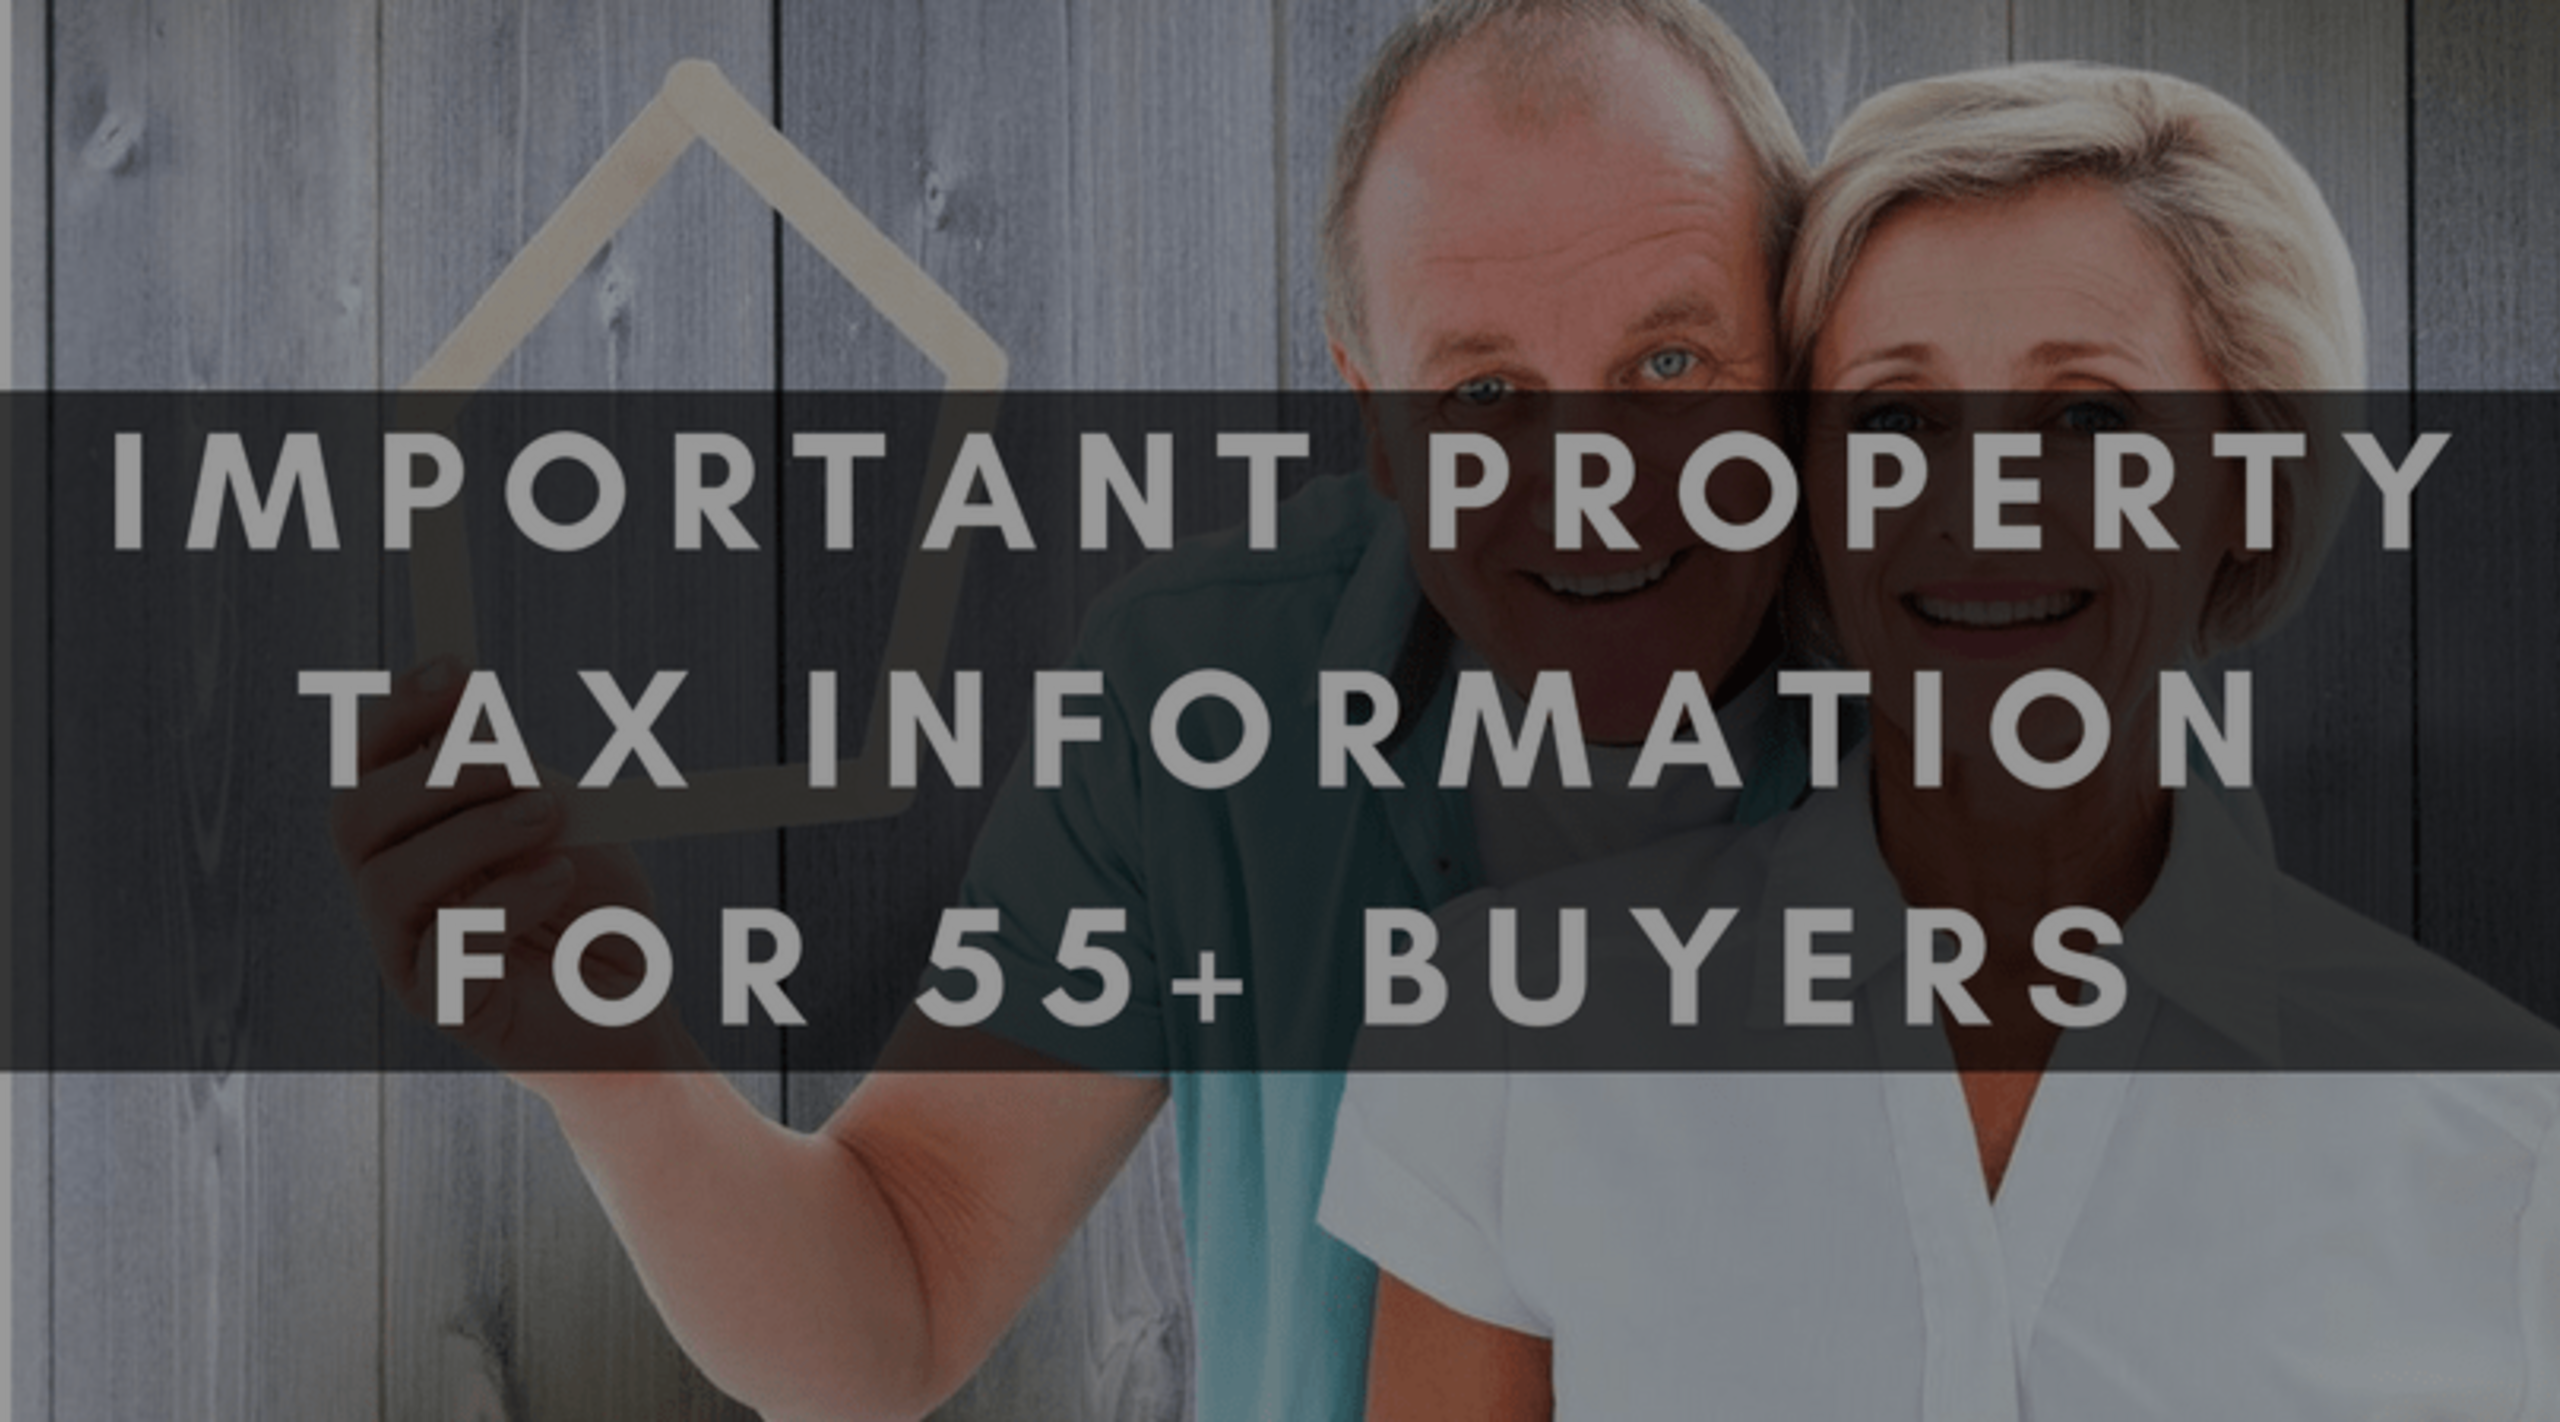 IMPORTANT PROPERTY TAX INFORMATION FOR 55+ BUYERS